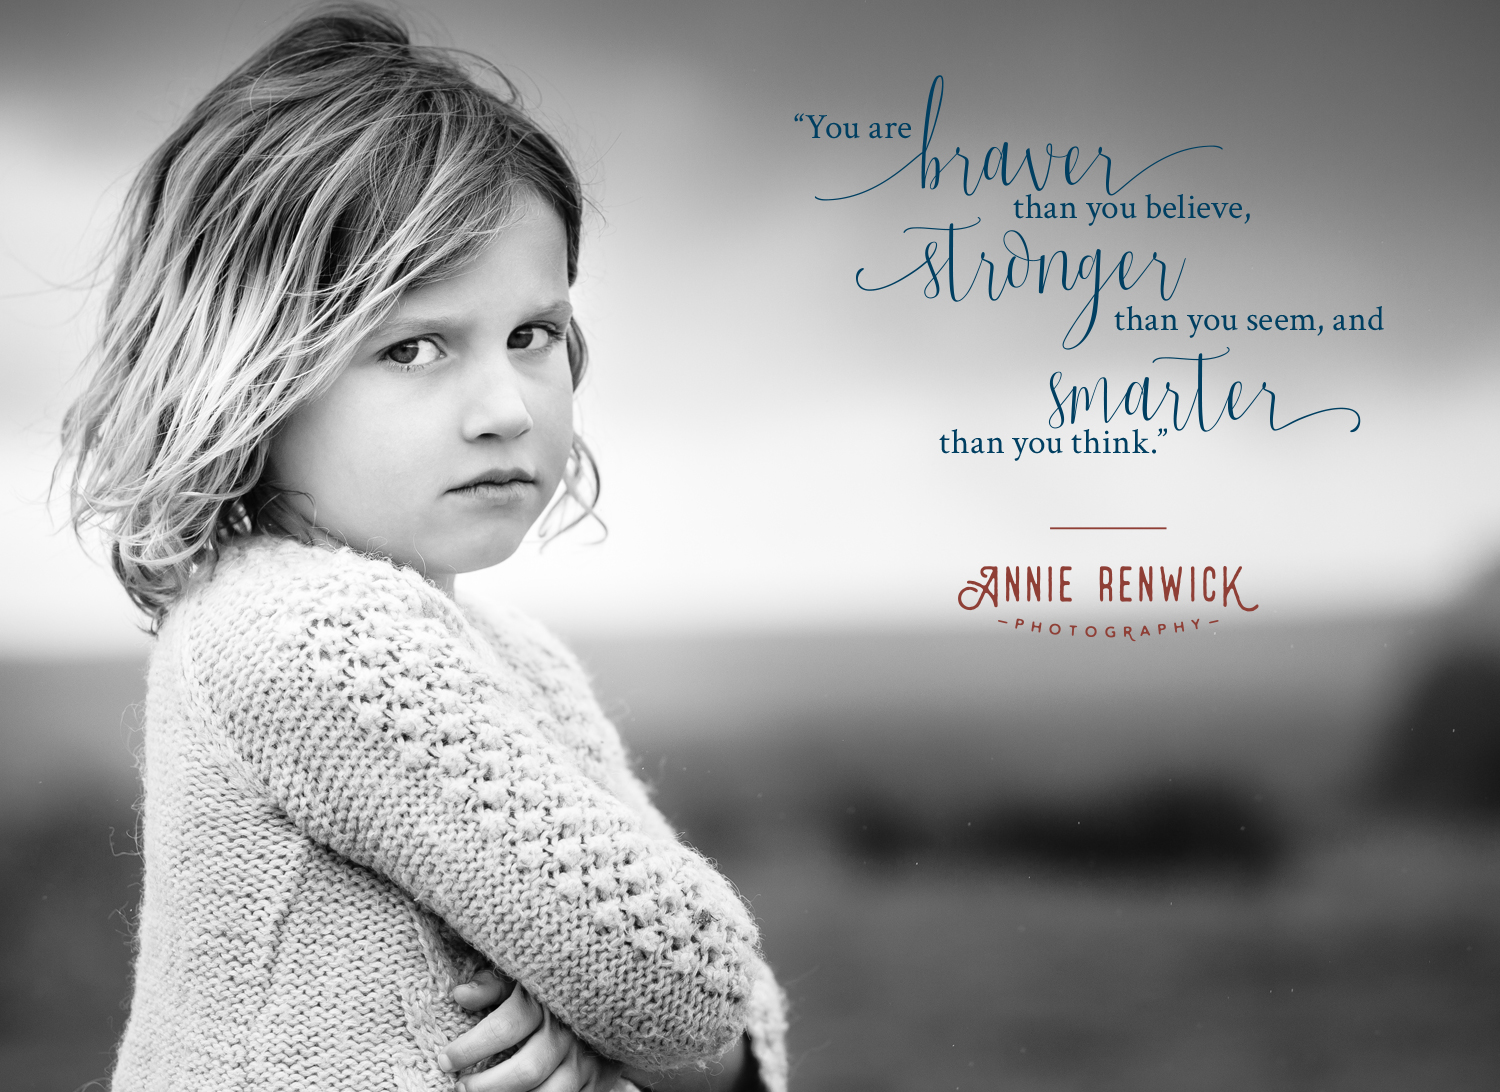 Brand identity, logo design and squarespace web design for Annie Renwick, fine art childrens photographer in Devon. Brand created by Ditto Creative, boutique branding agency in Kent specialising in branding for small businesses